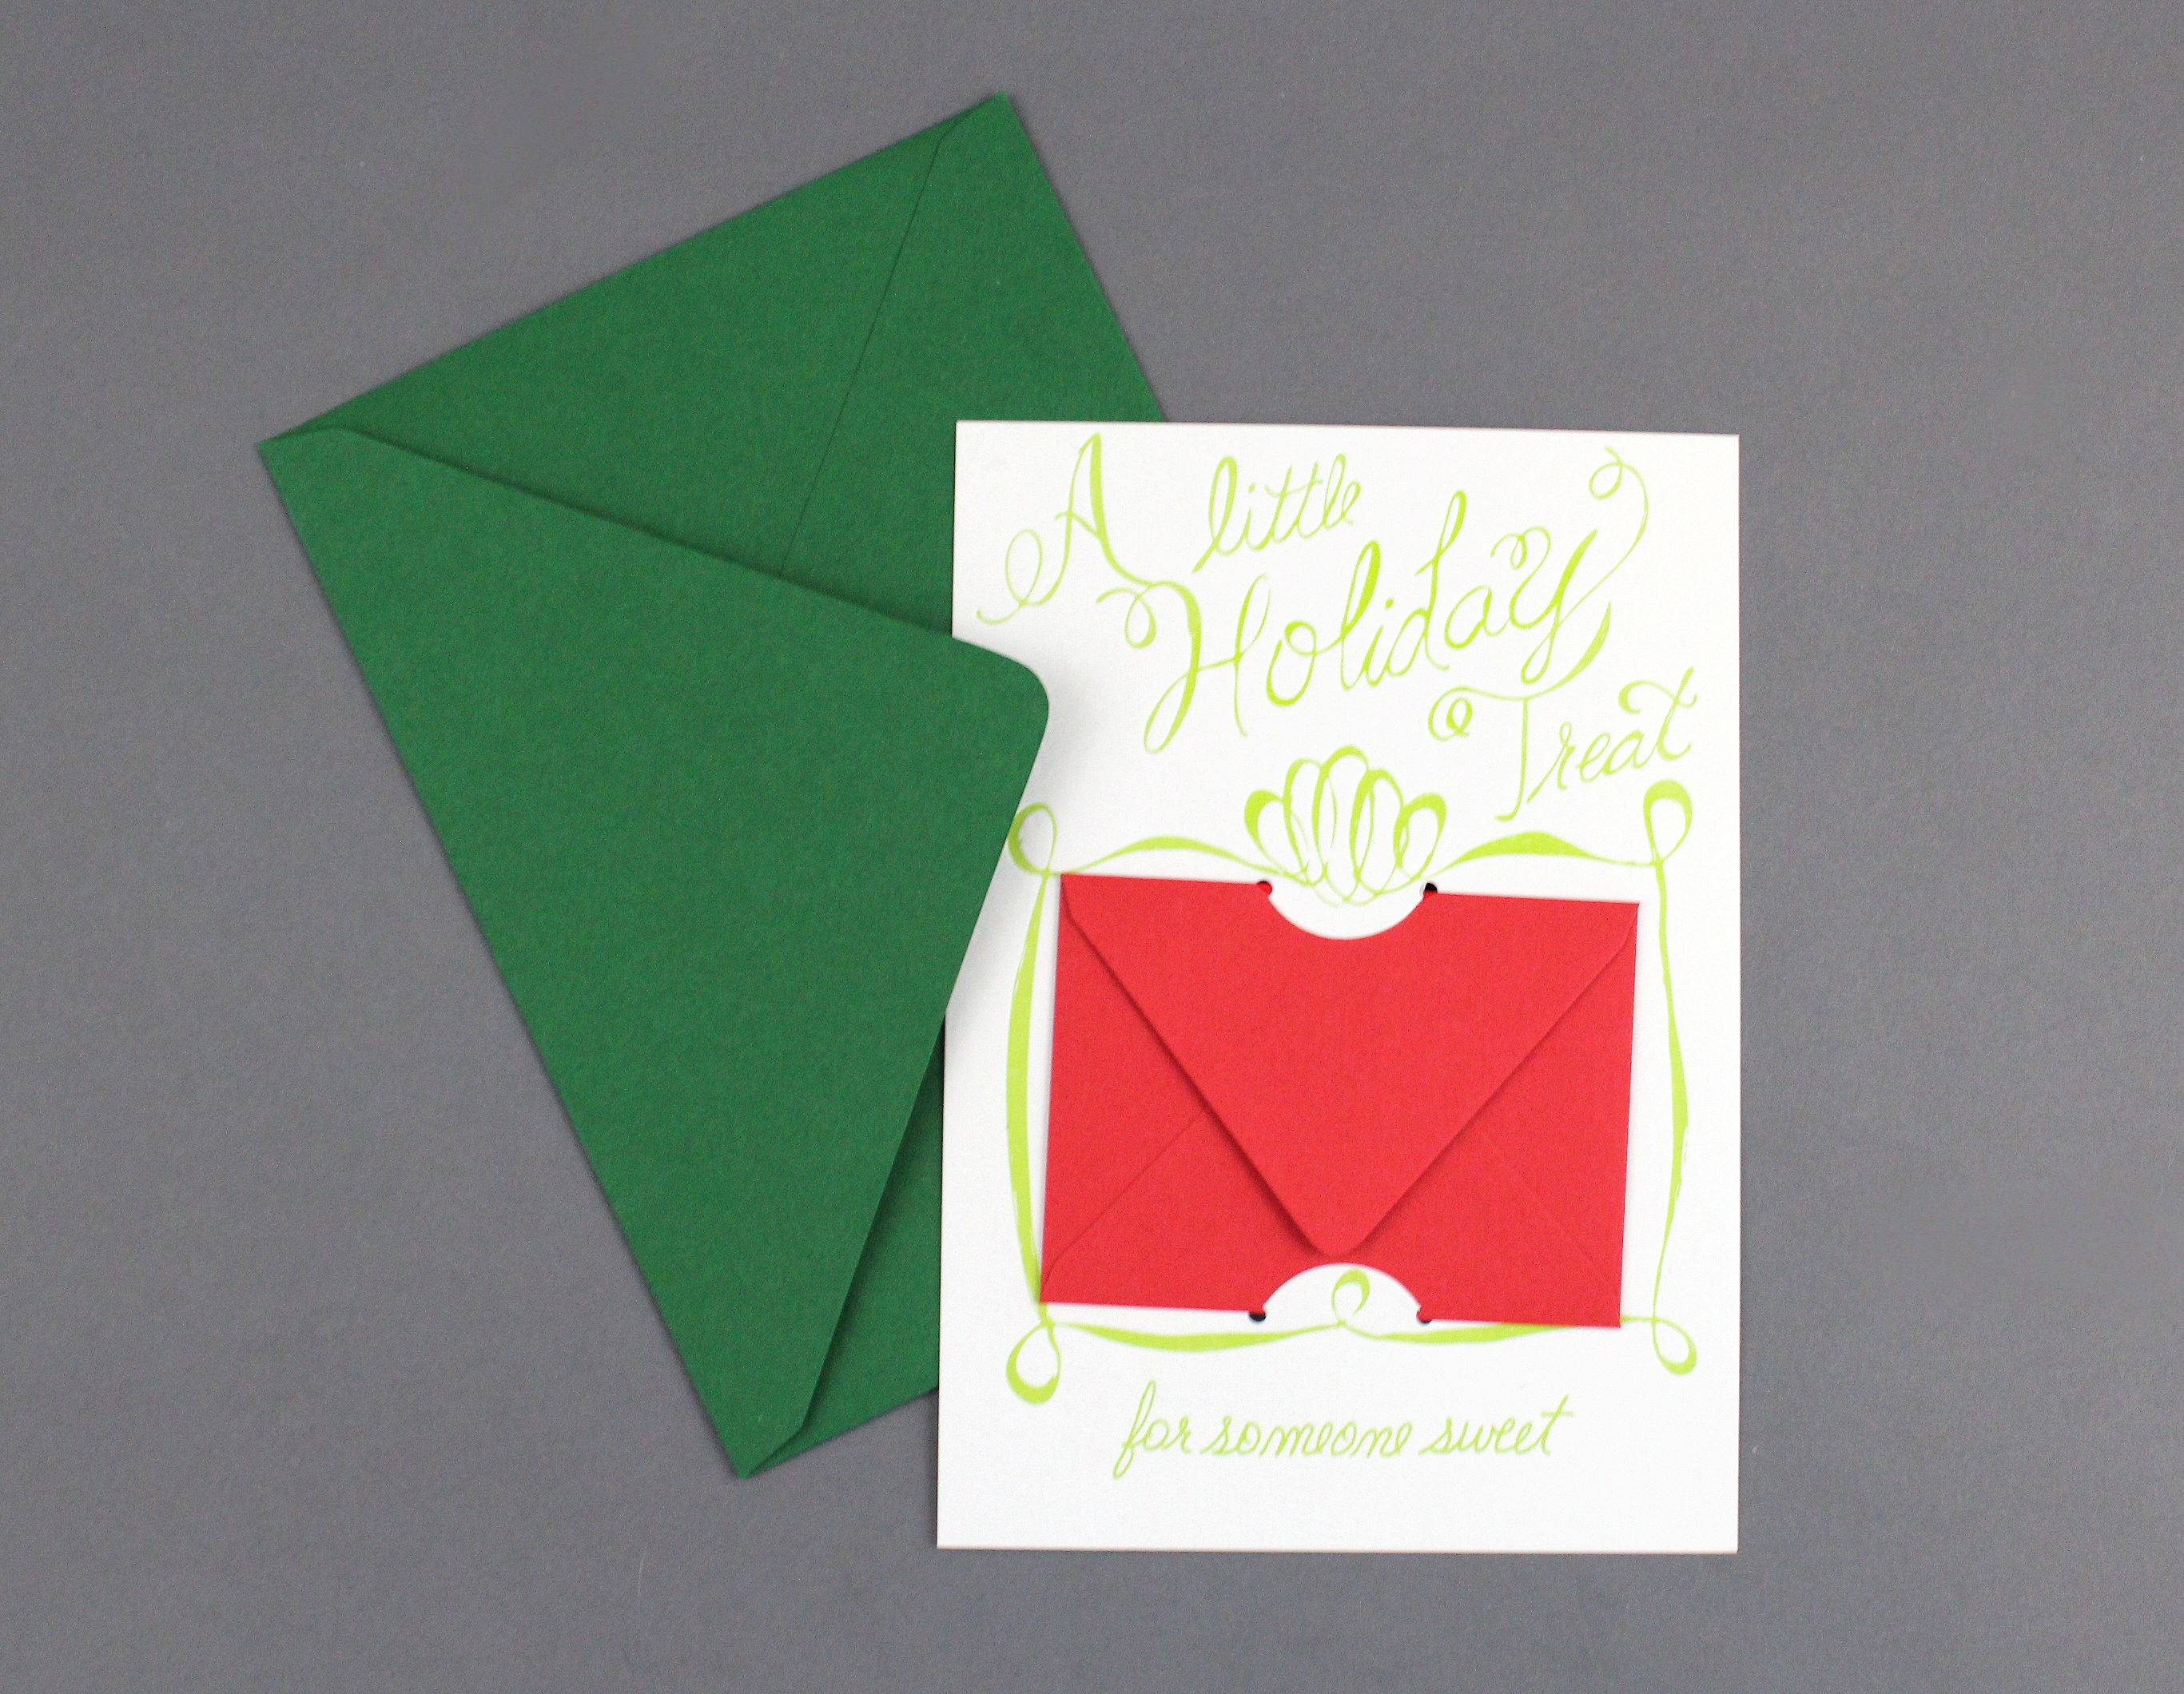 A little holiday treat for someone sweet letterpress holiday gift holiday treat greeting card gift card holder letterpress m4hsunfo